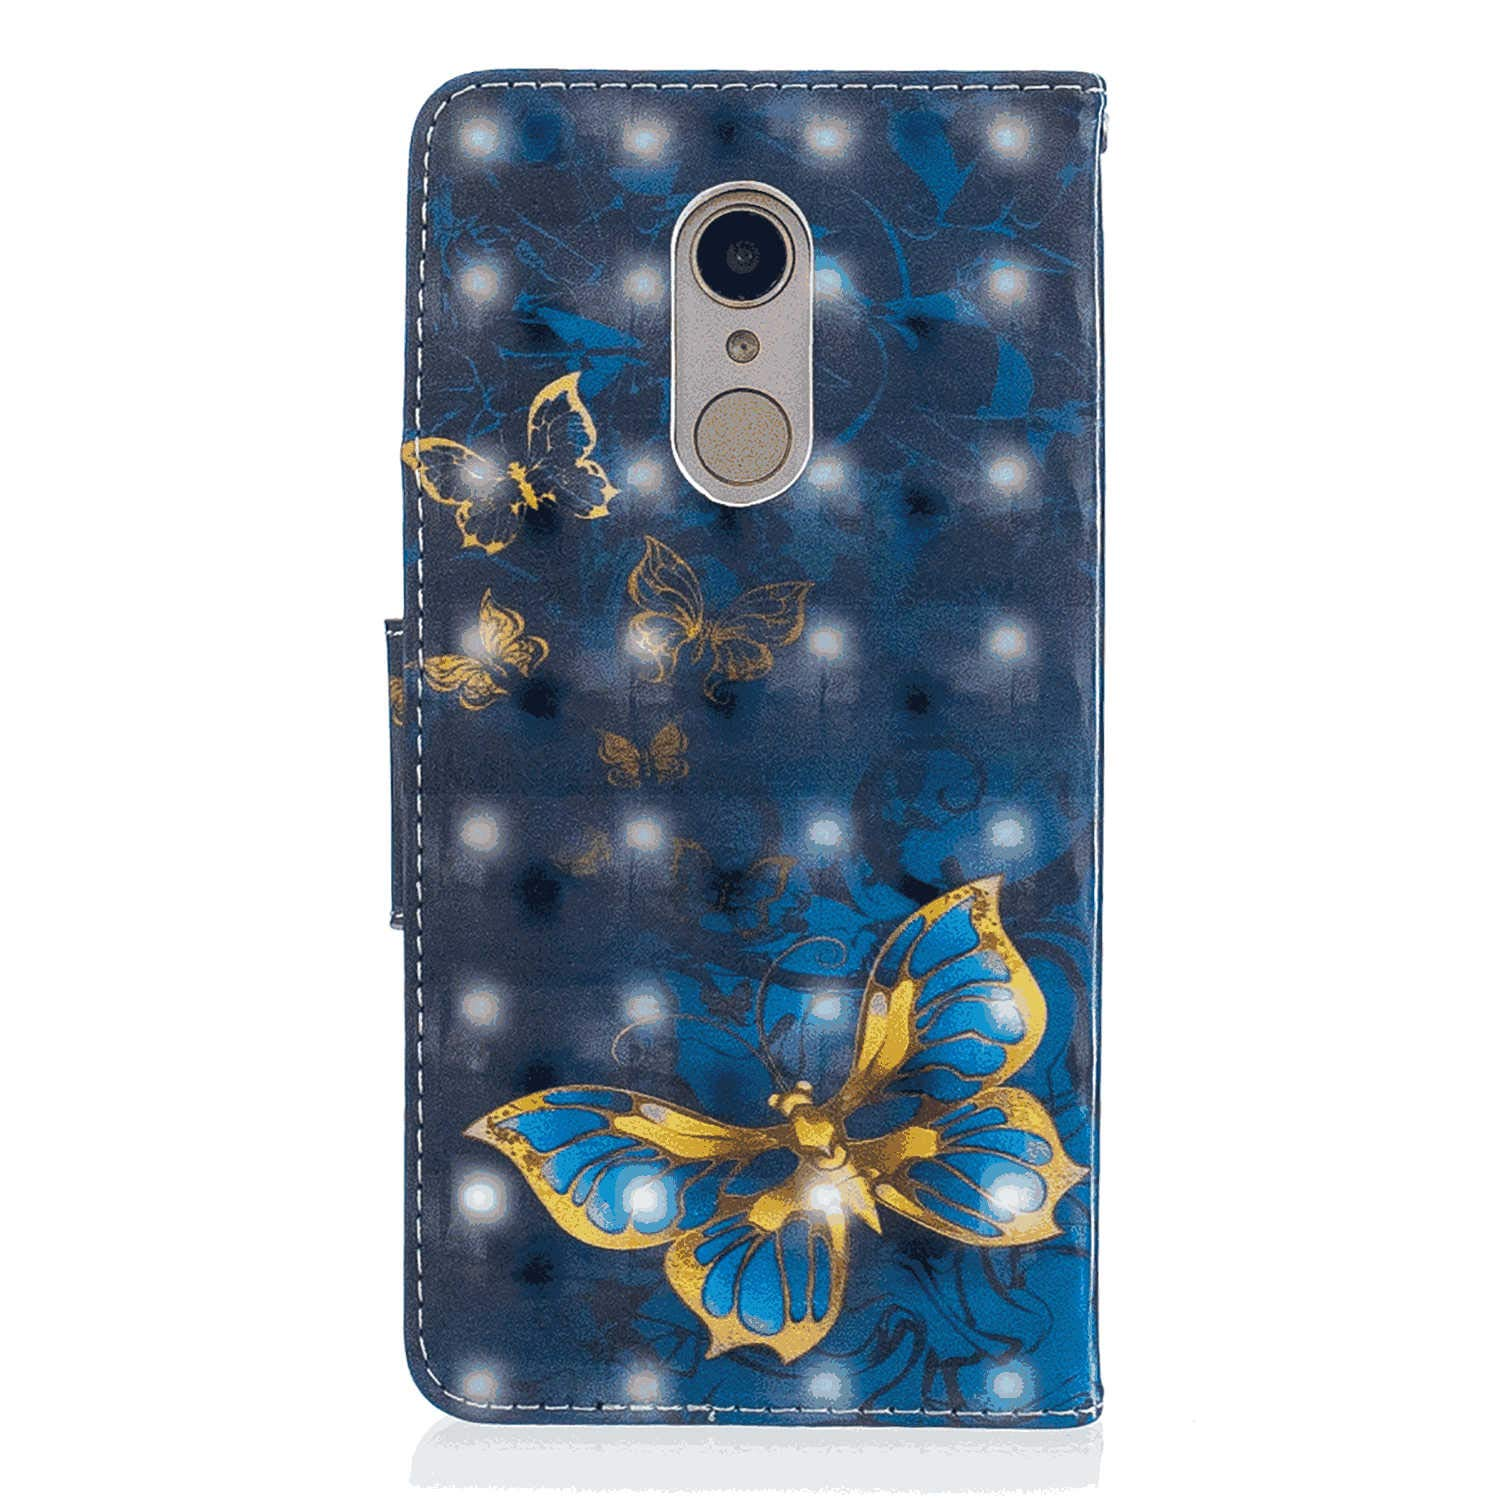 Cover for Samsung Galaxy S8 Plus Leather Card Holders Wallet case Extra-Protective Business Kickstand with Free Waterproof-Bag Classical Samsung Galaxy S8 Plus Flip Case